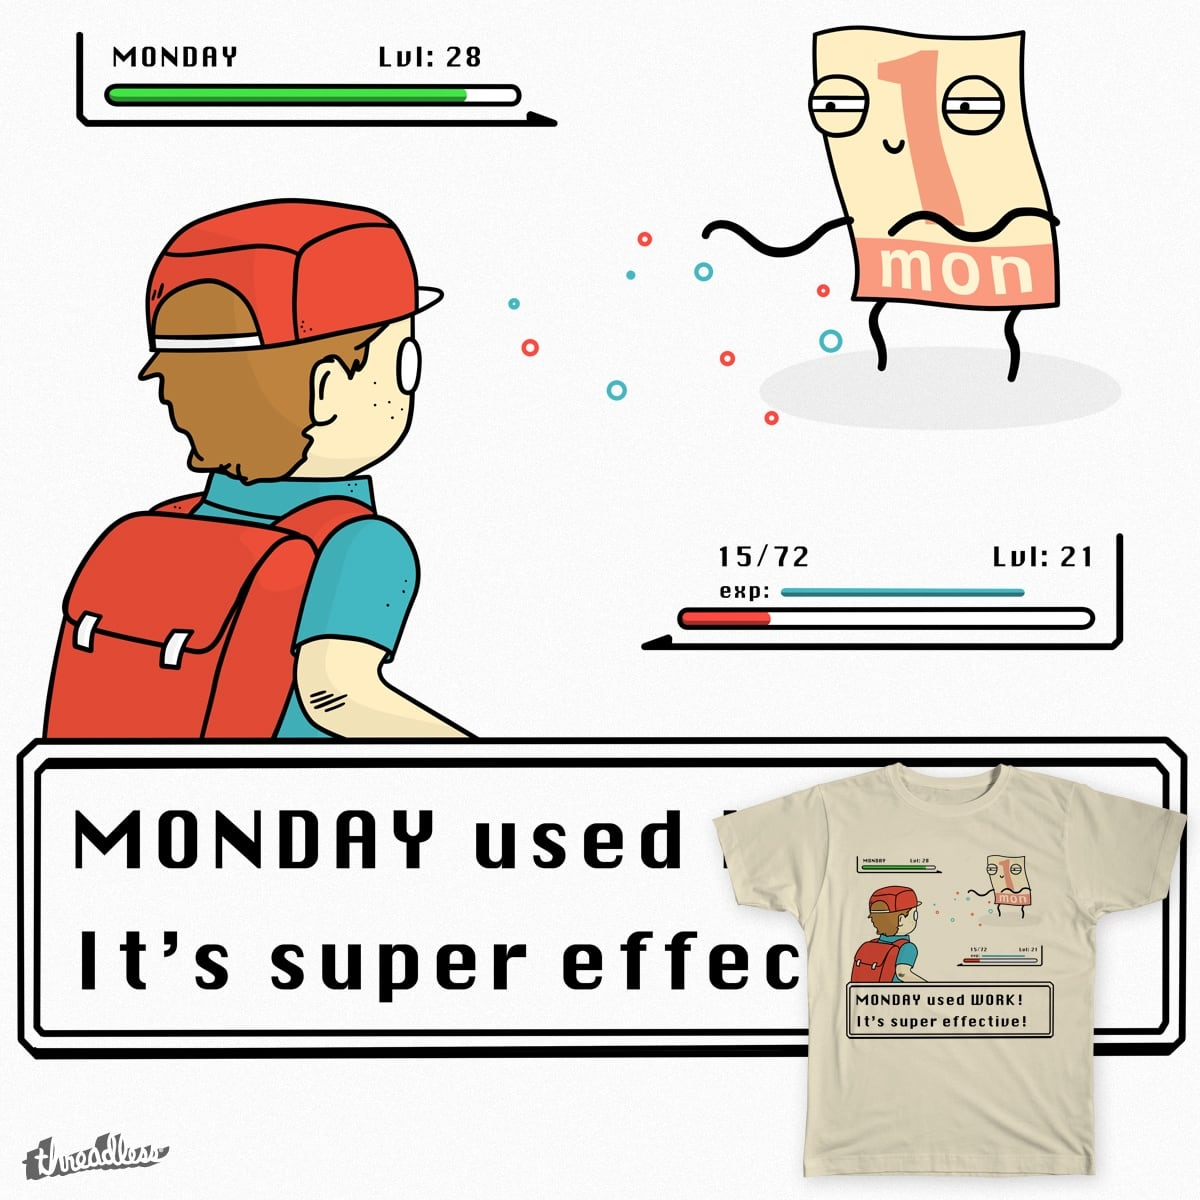 Monday used Work! by jack.nz on Threadless